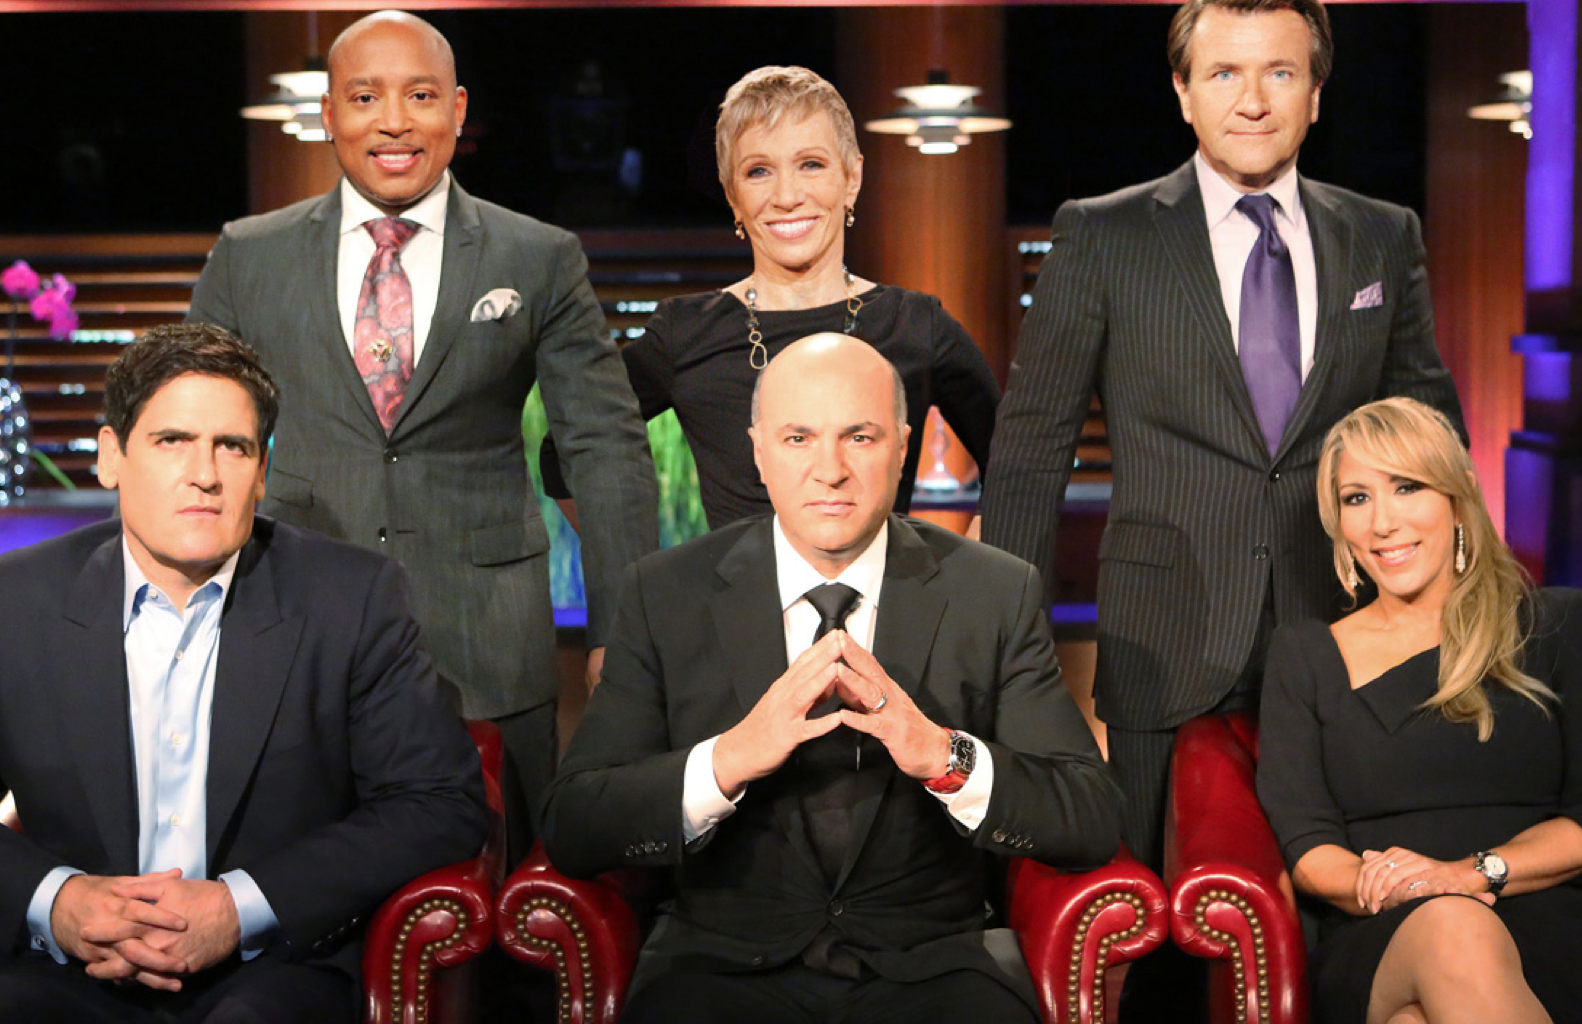 Guest Sharks to Invade the Shark Tank